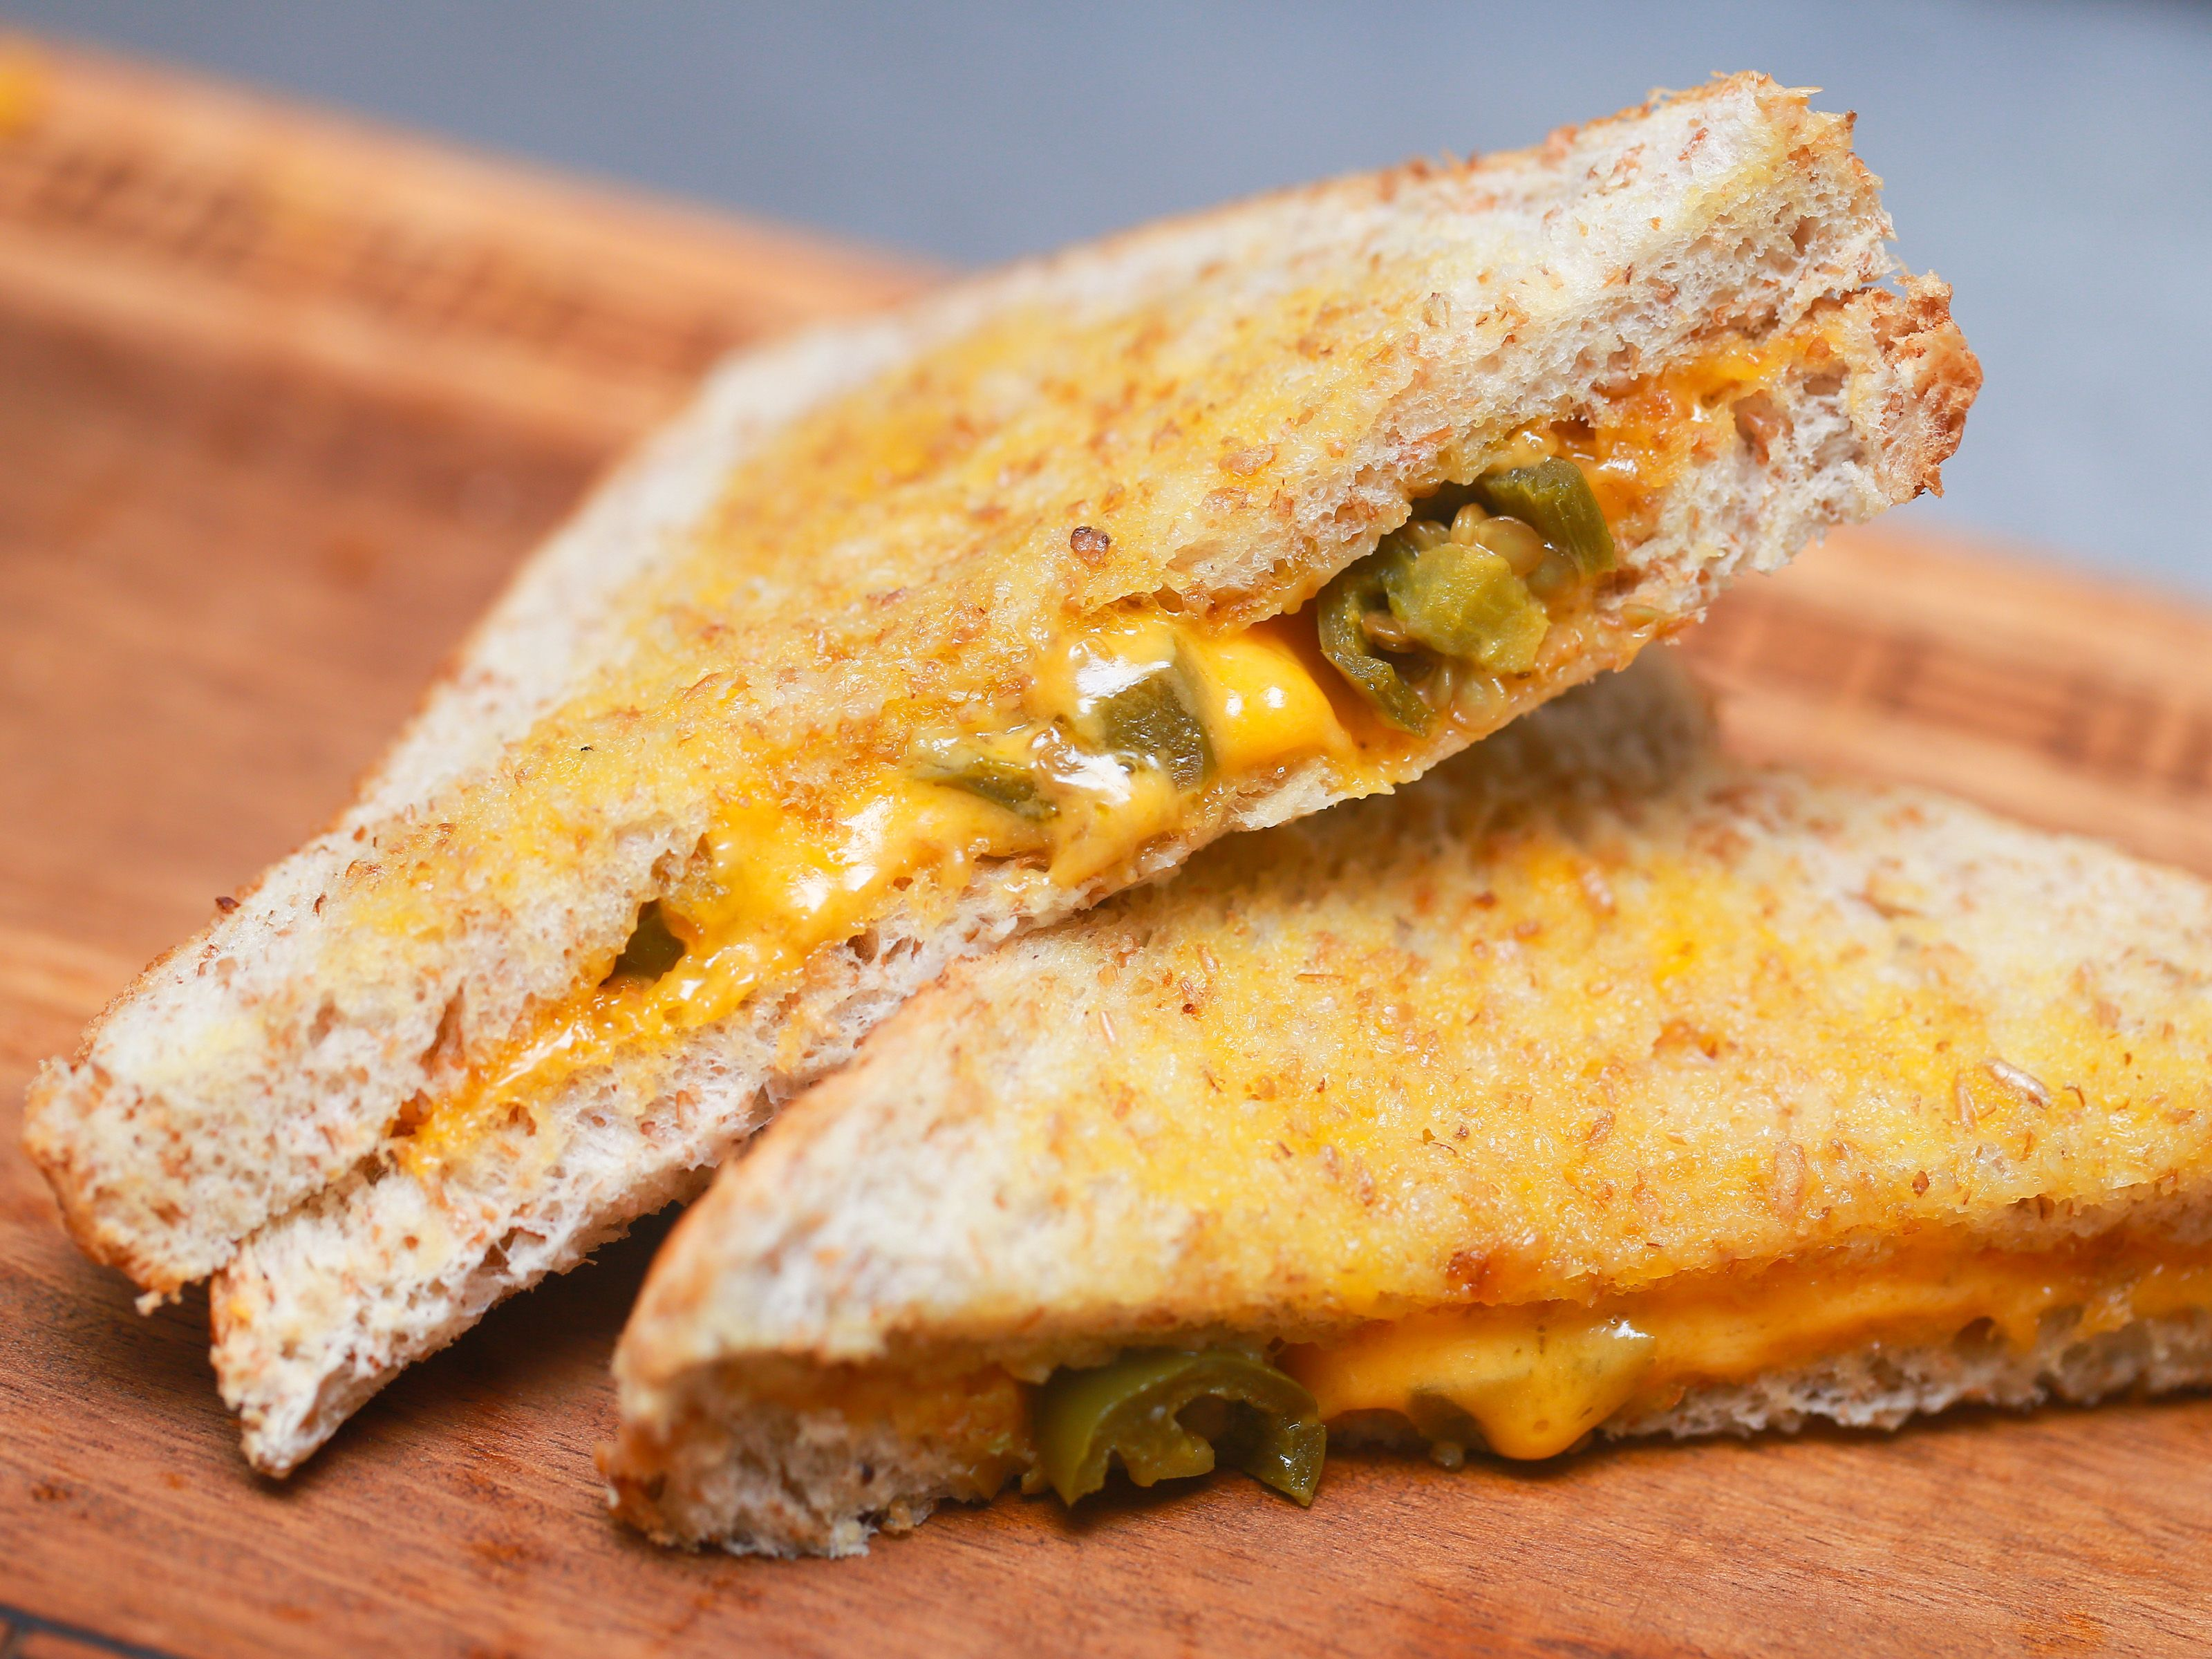 How To Make A Grilled Cheese Sandwich Using A Microwave Recipe Making Grilled Cheese Microwave Grilled Cheese Sandwiches